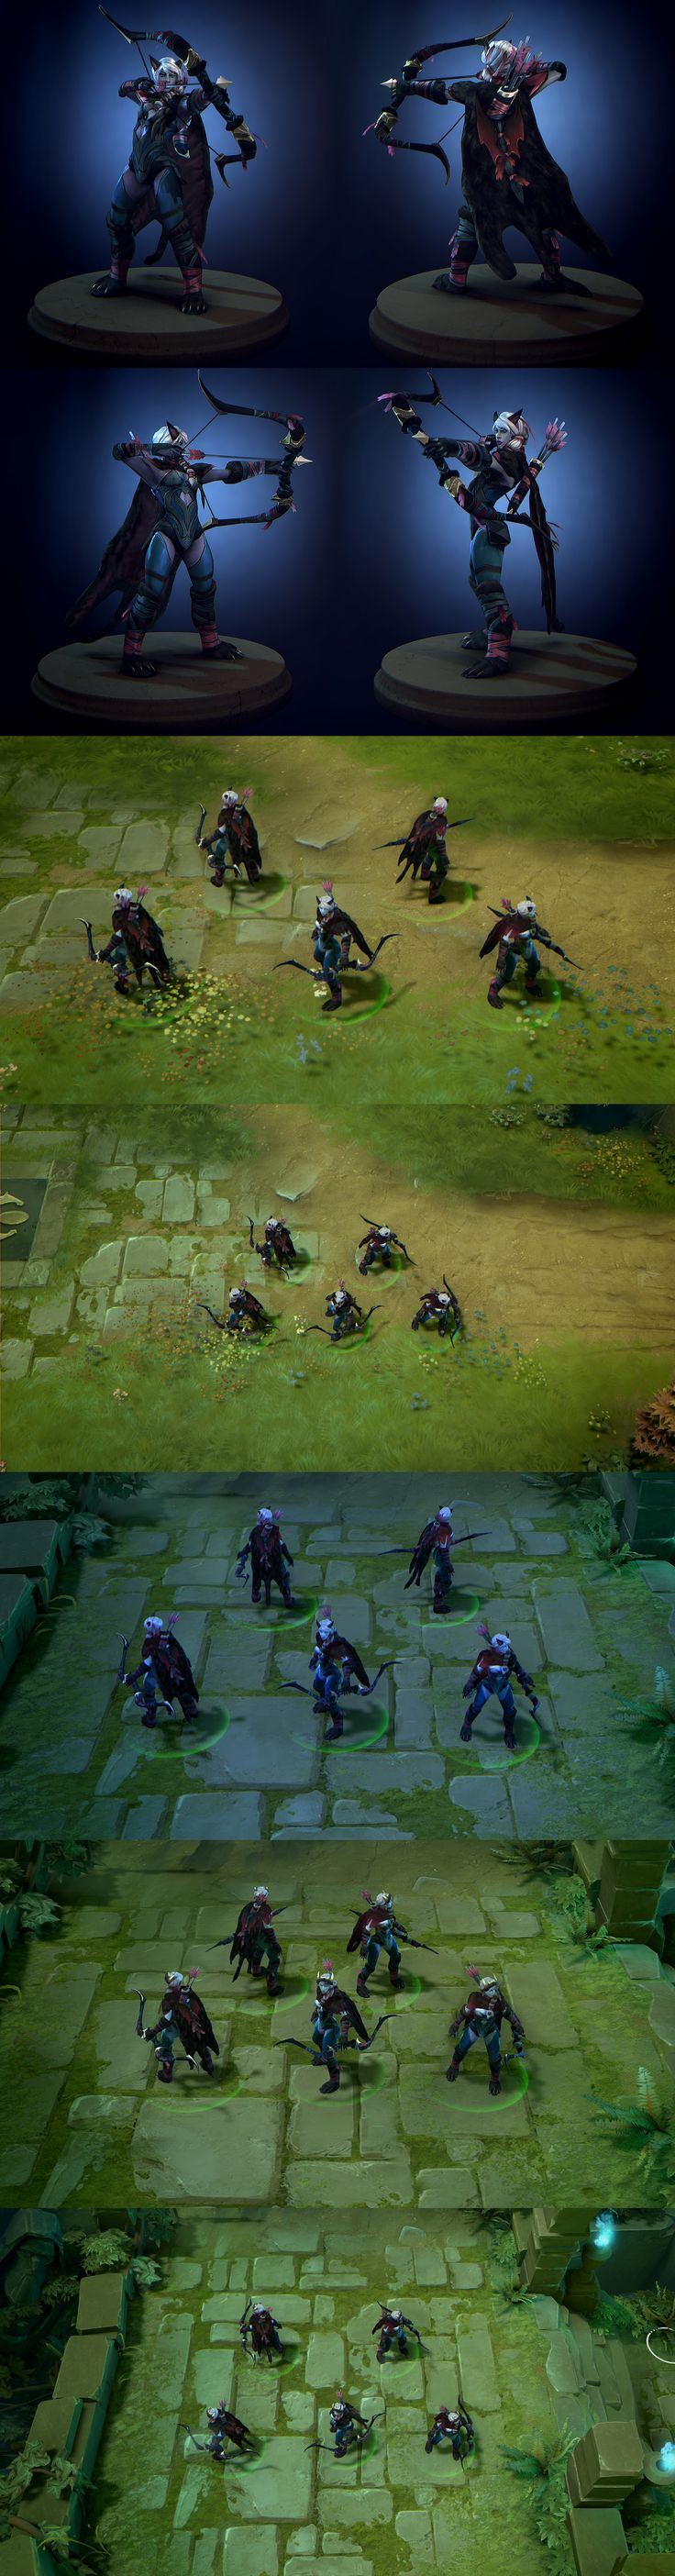 Dota2 Set: Gifts of the Shadowcat by polyphobia3d on deviantART